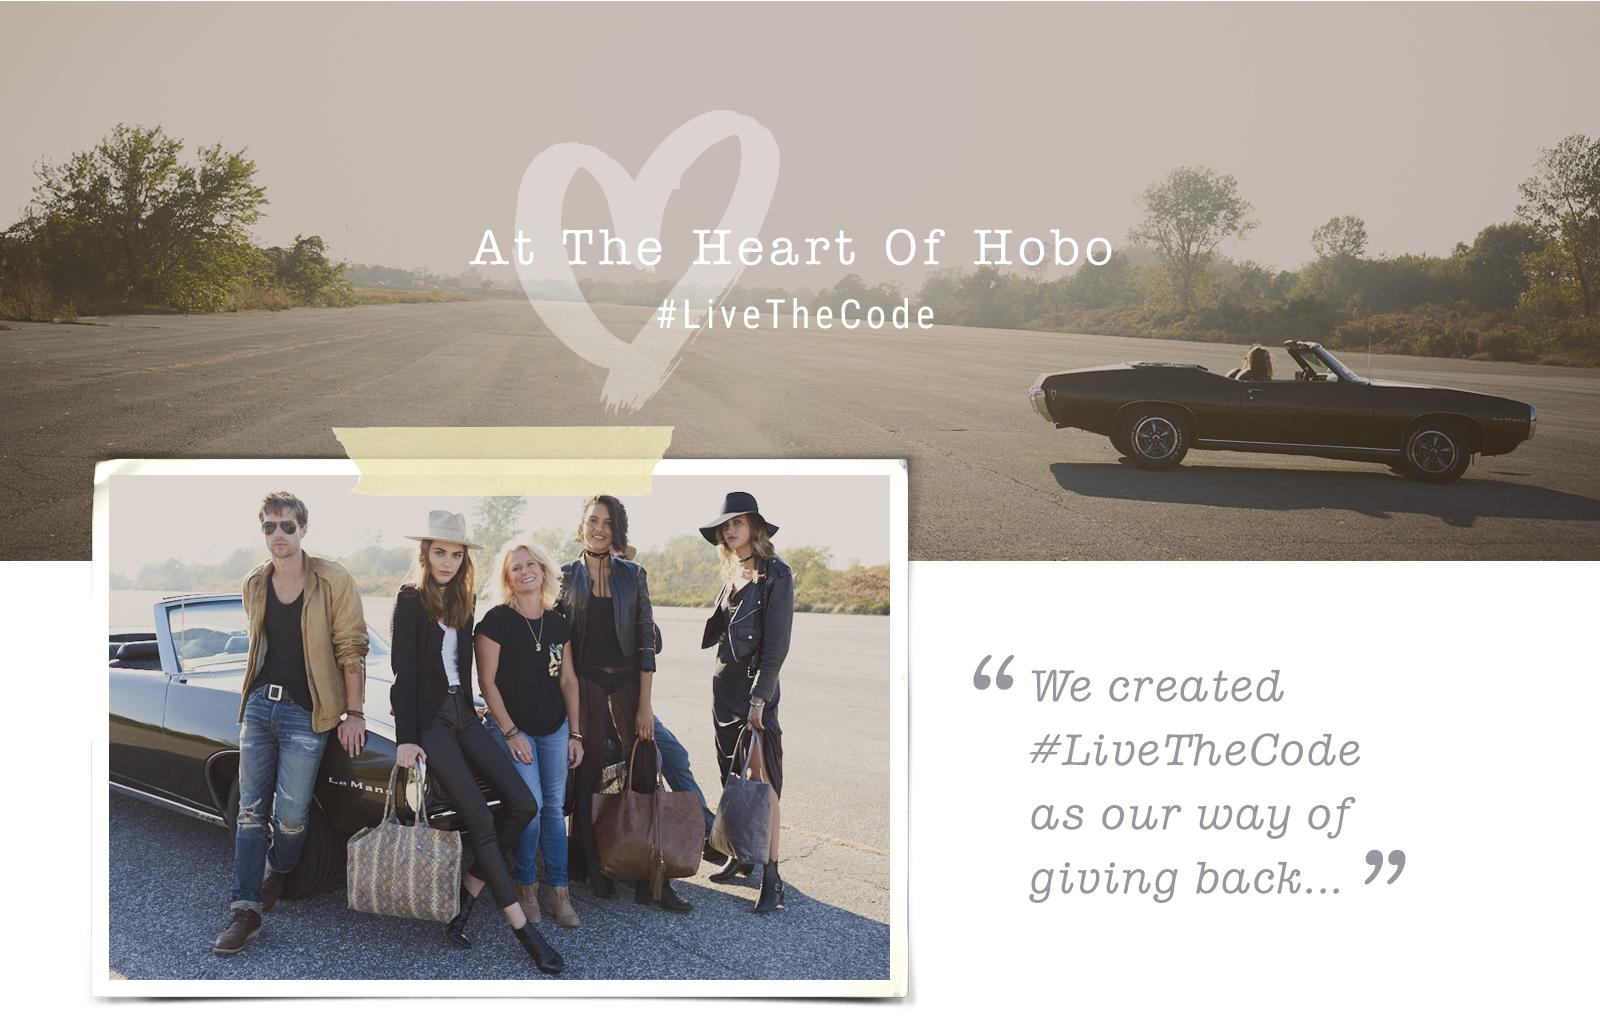 At the heart of Hobo... Live the Code